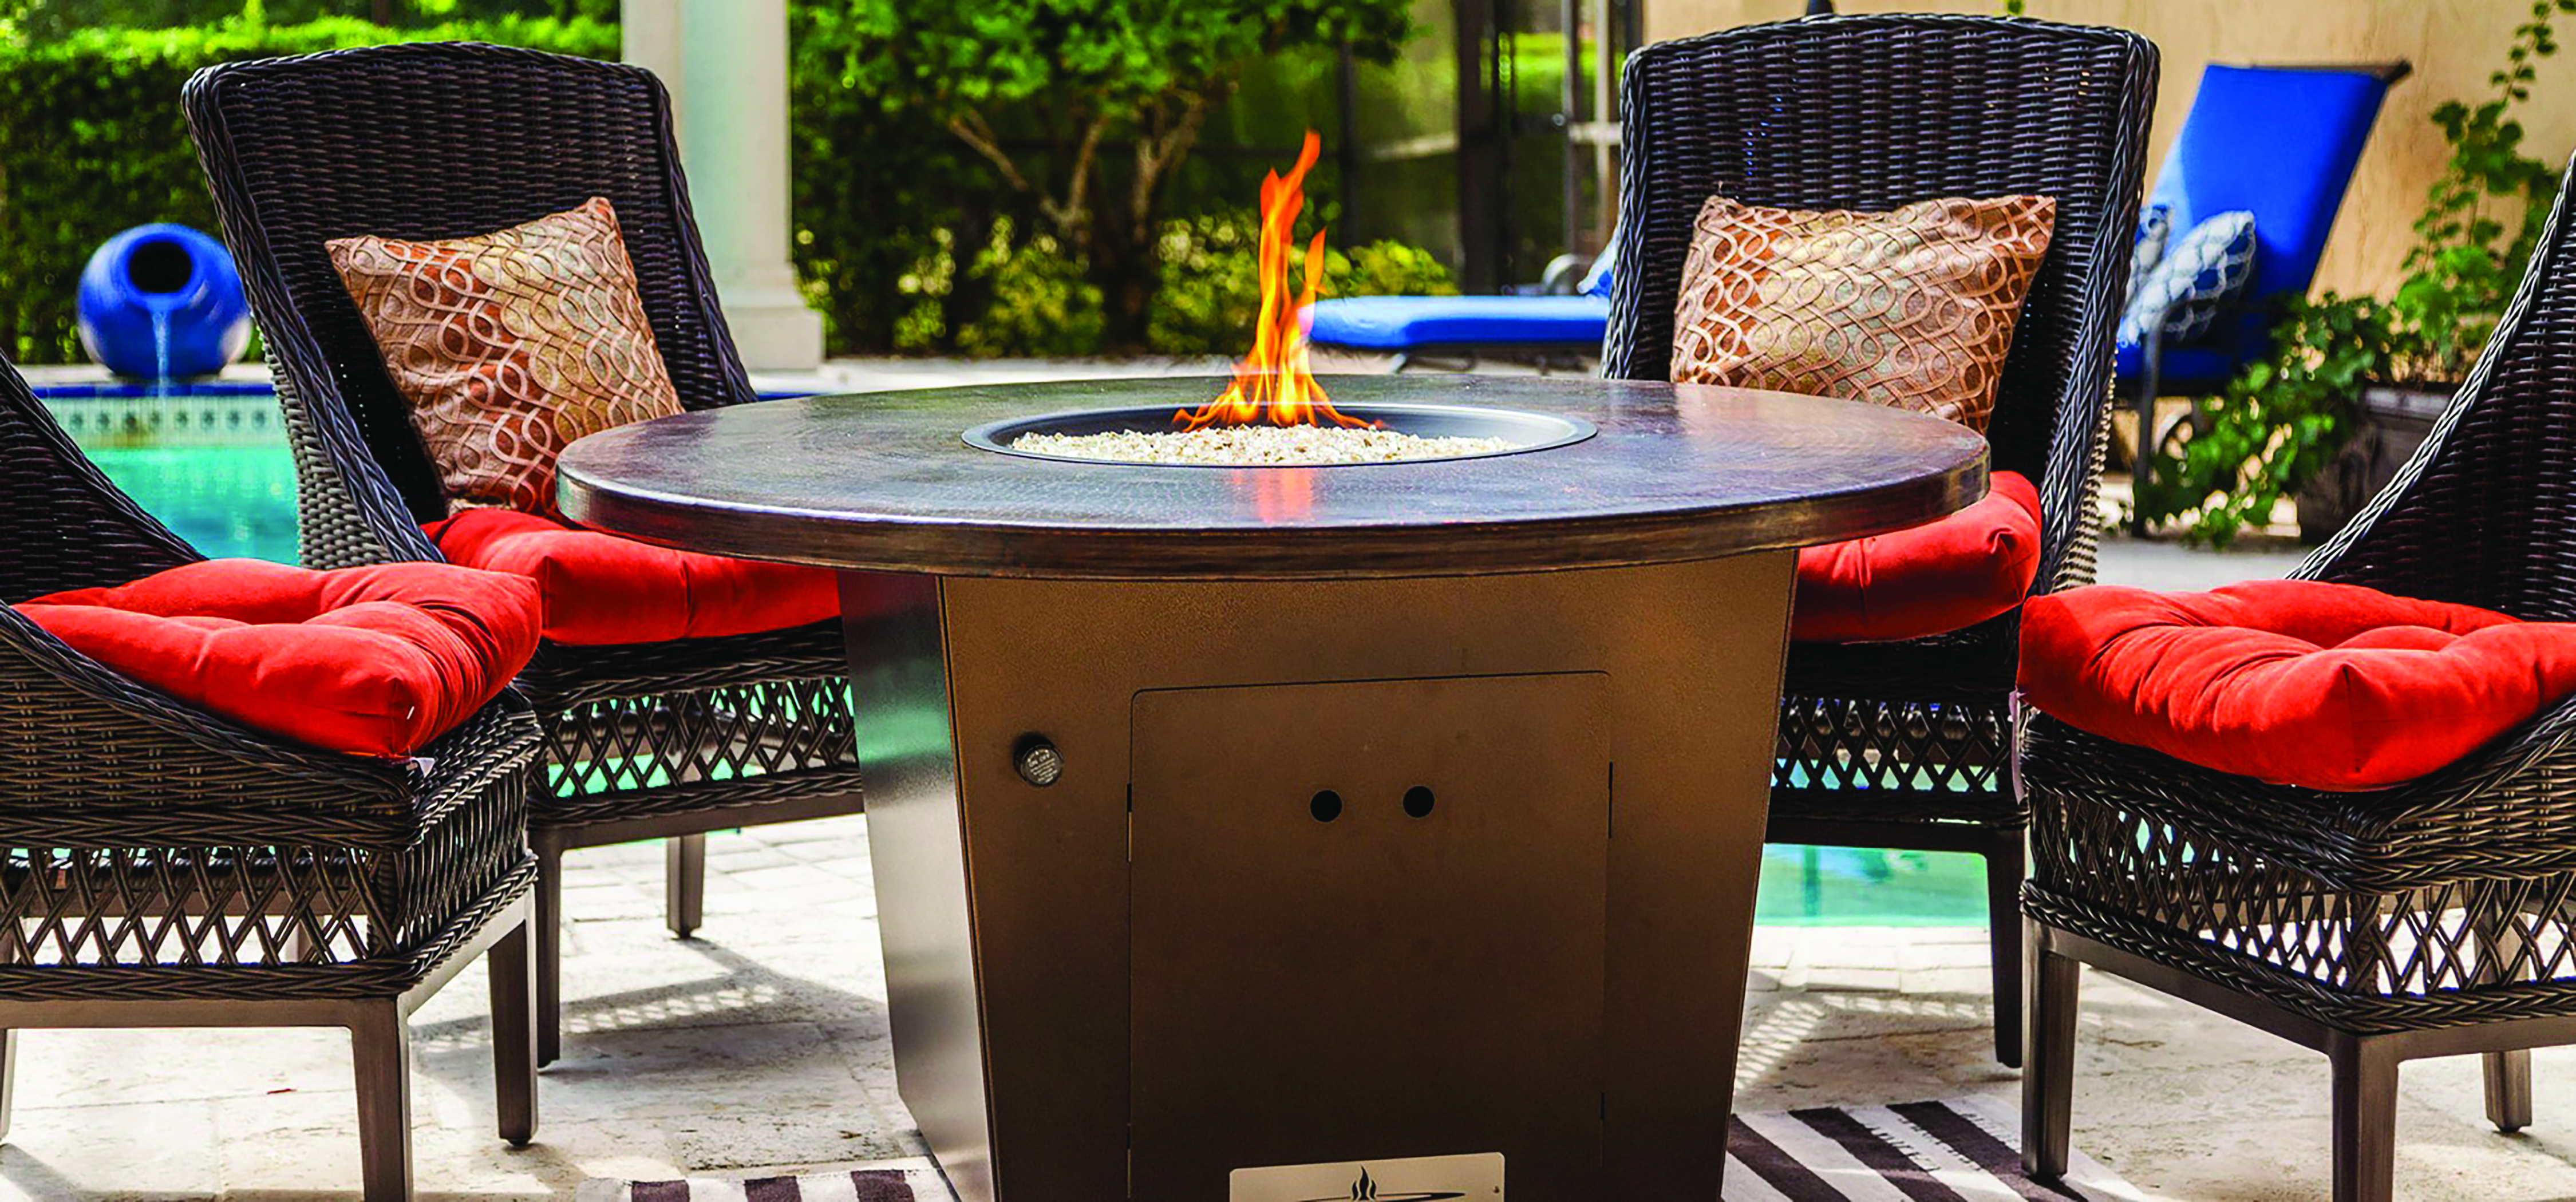 From Patio Furniture to Pools 3 Ways to Make Your